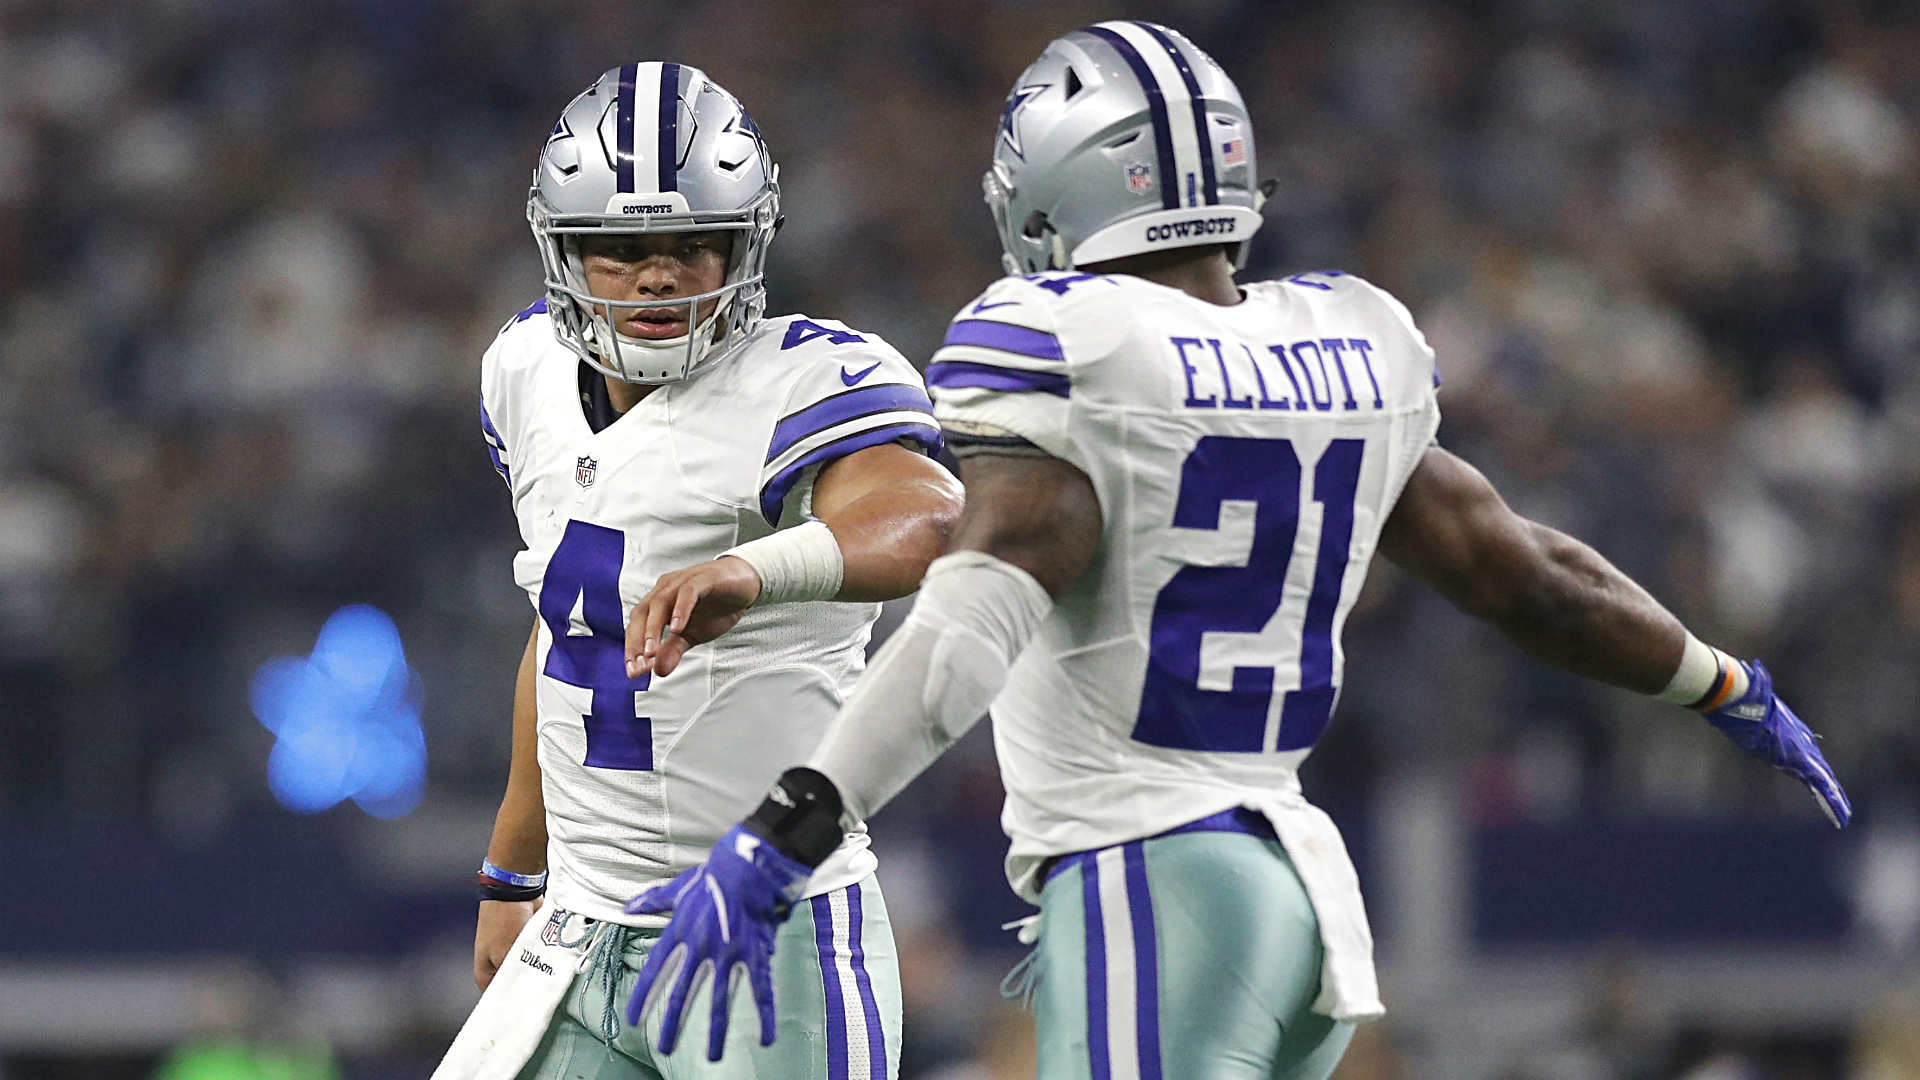 Cowboys offense adjusting to life after Dez Bryant, Jason Witten